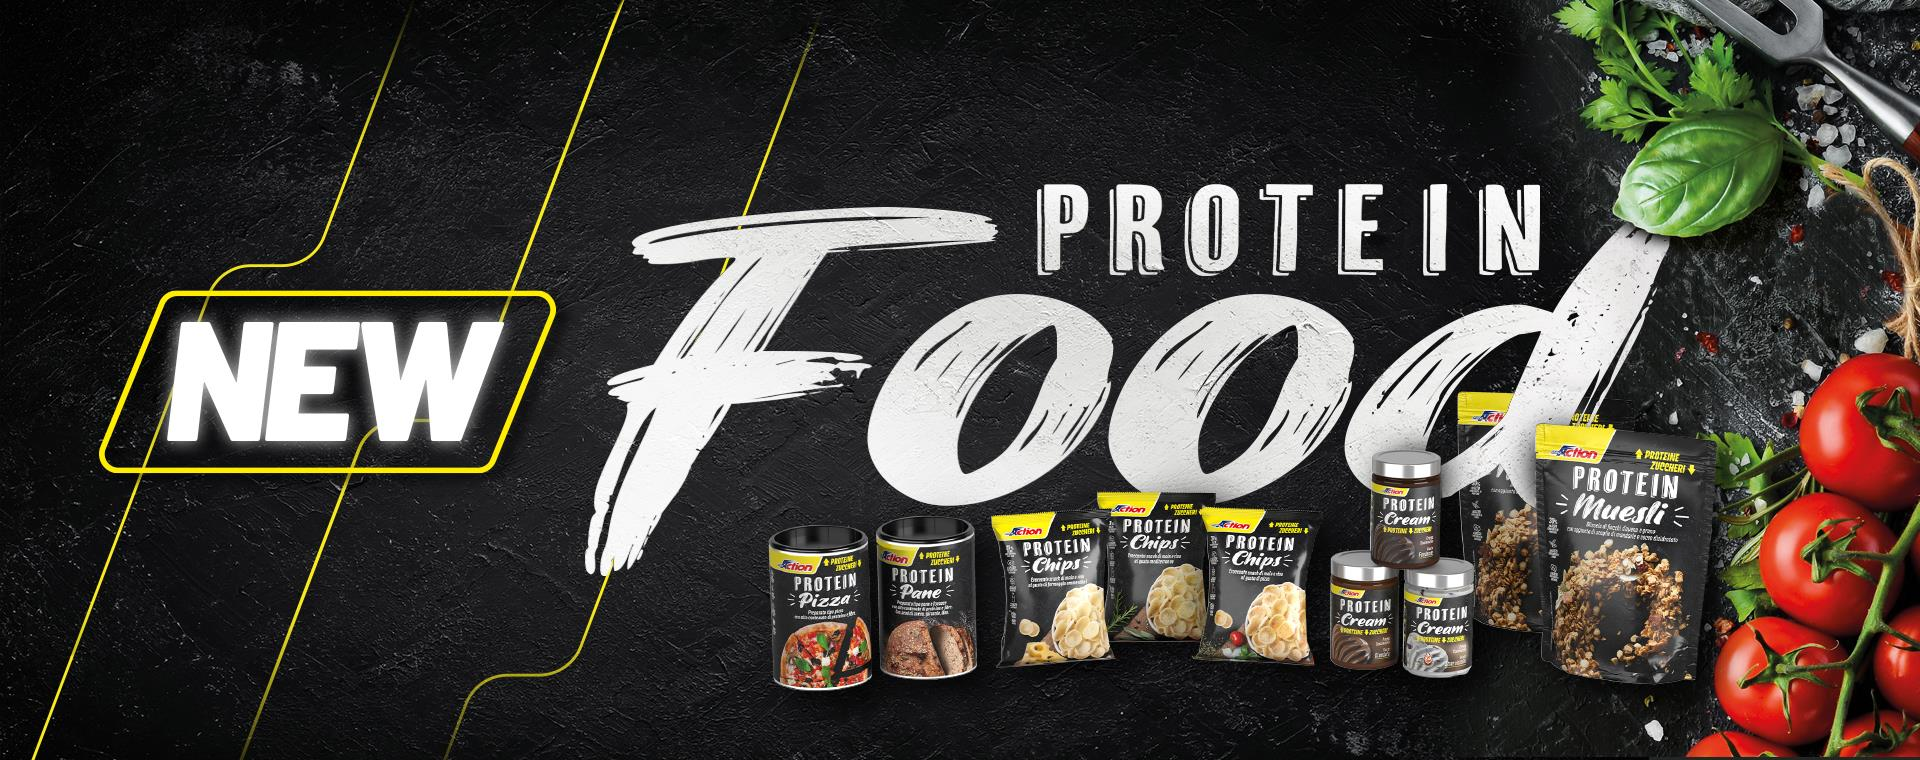 pro-action-protein-food-large.jpg